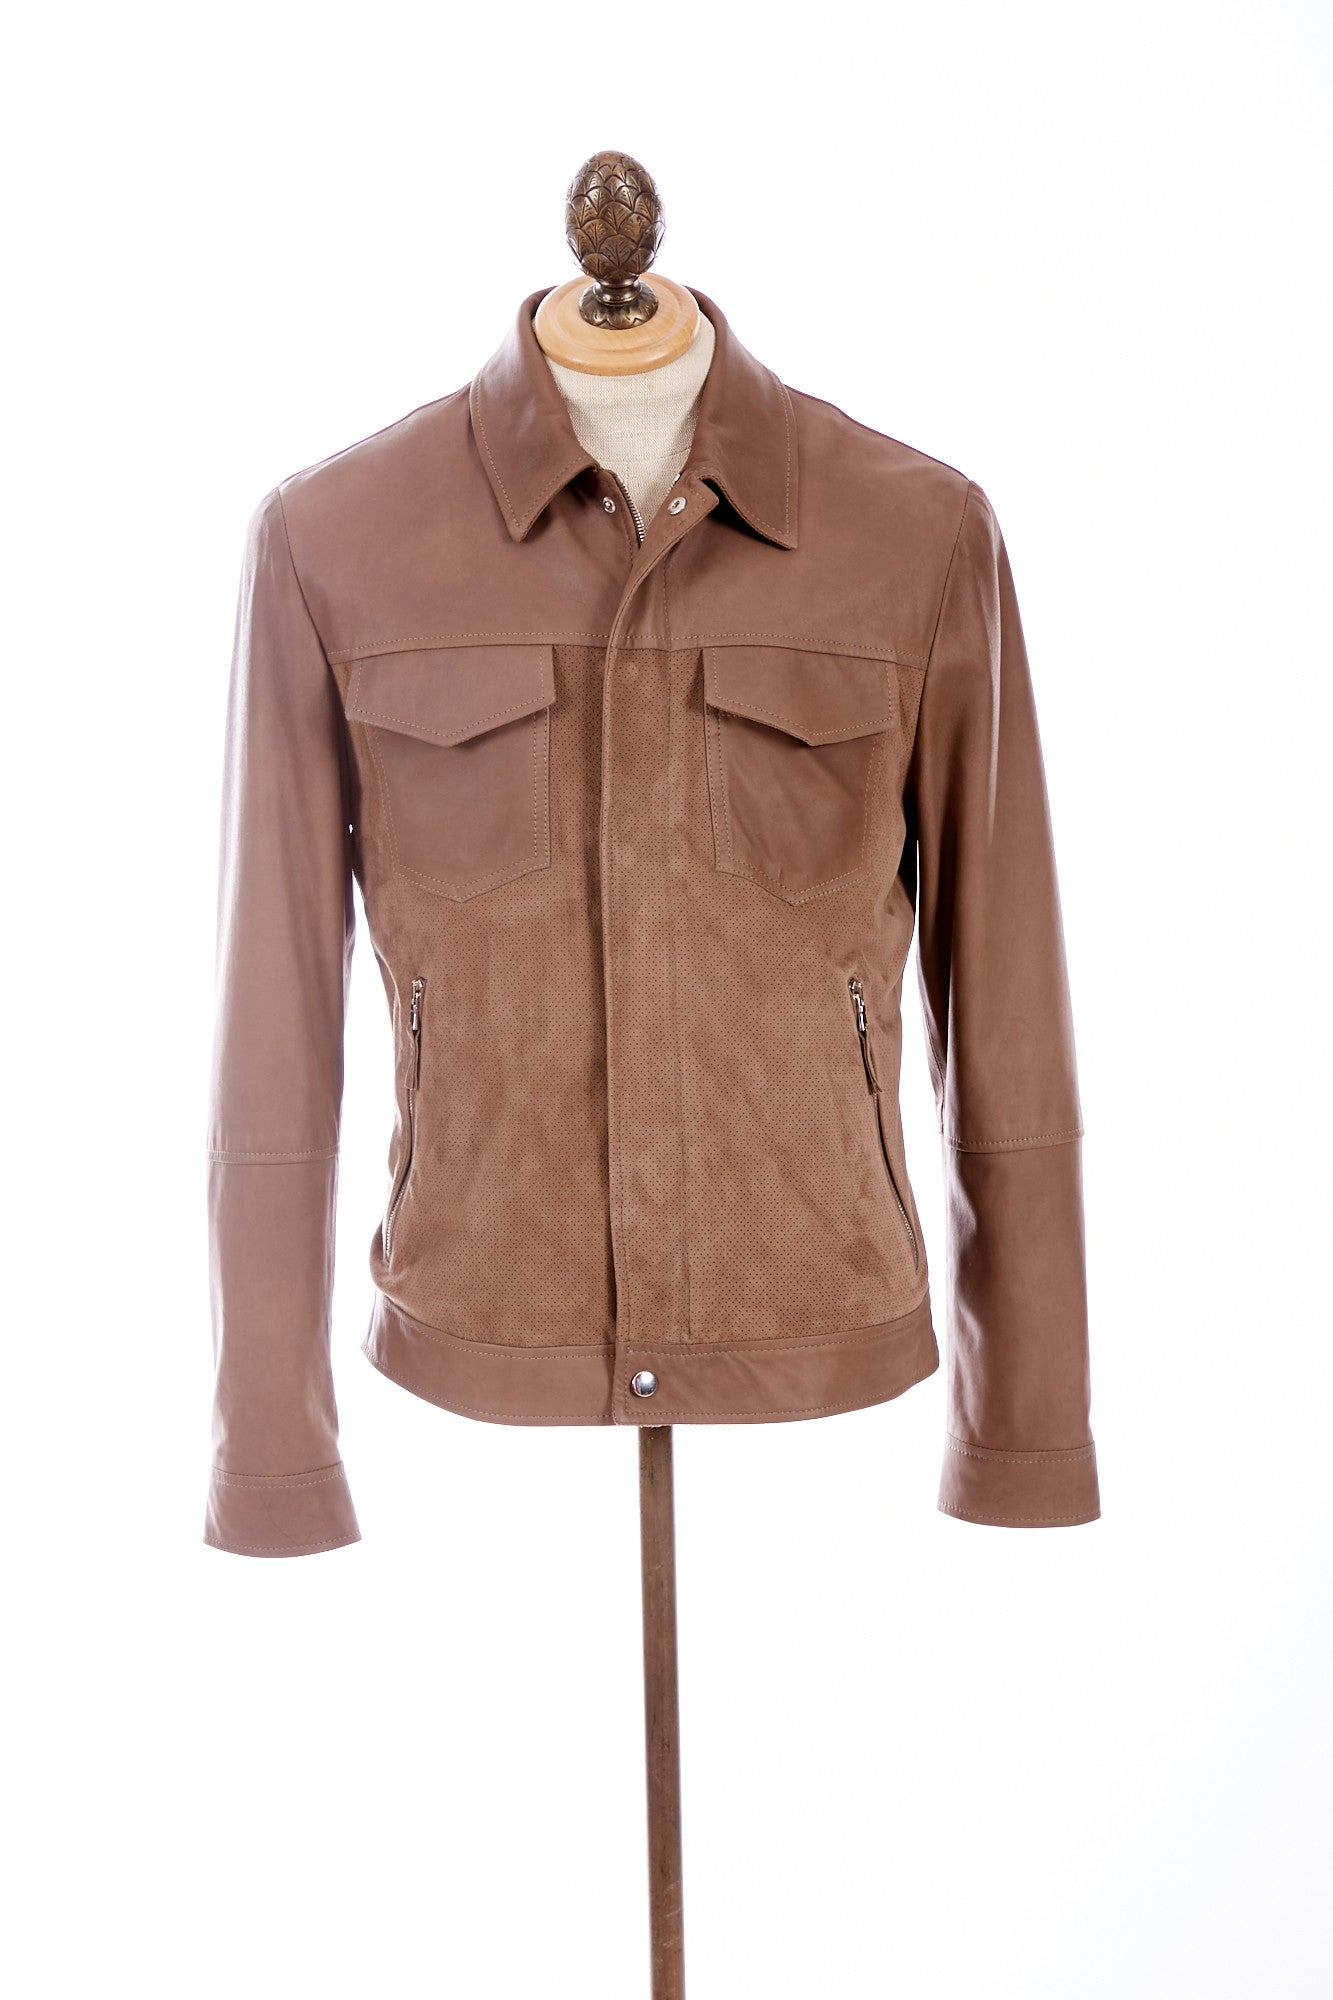 Eleventy Goat Suede and Leather Bomber - Outerwear - Eleventy - LALONDE's